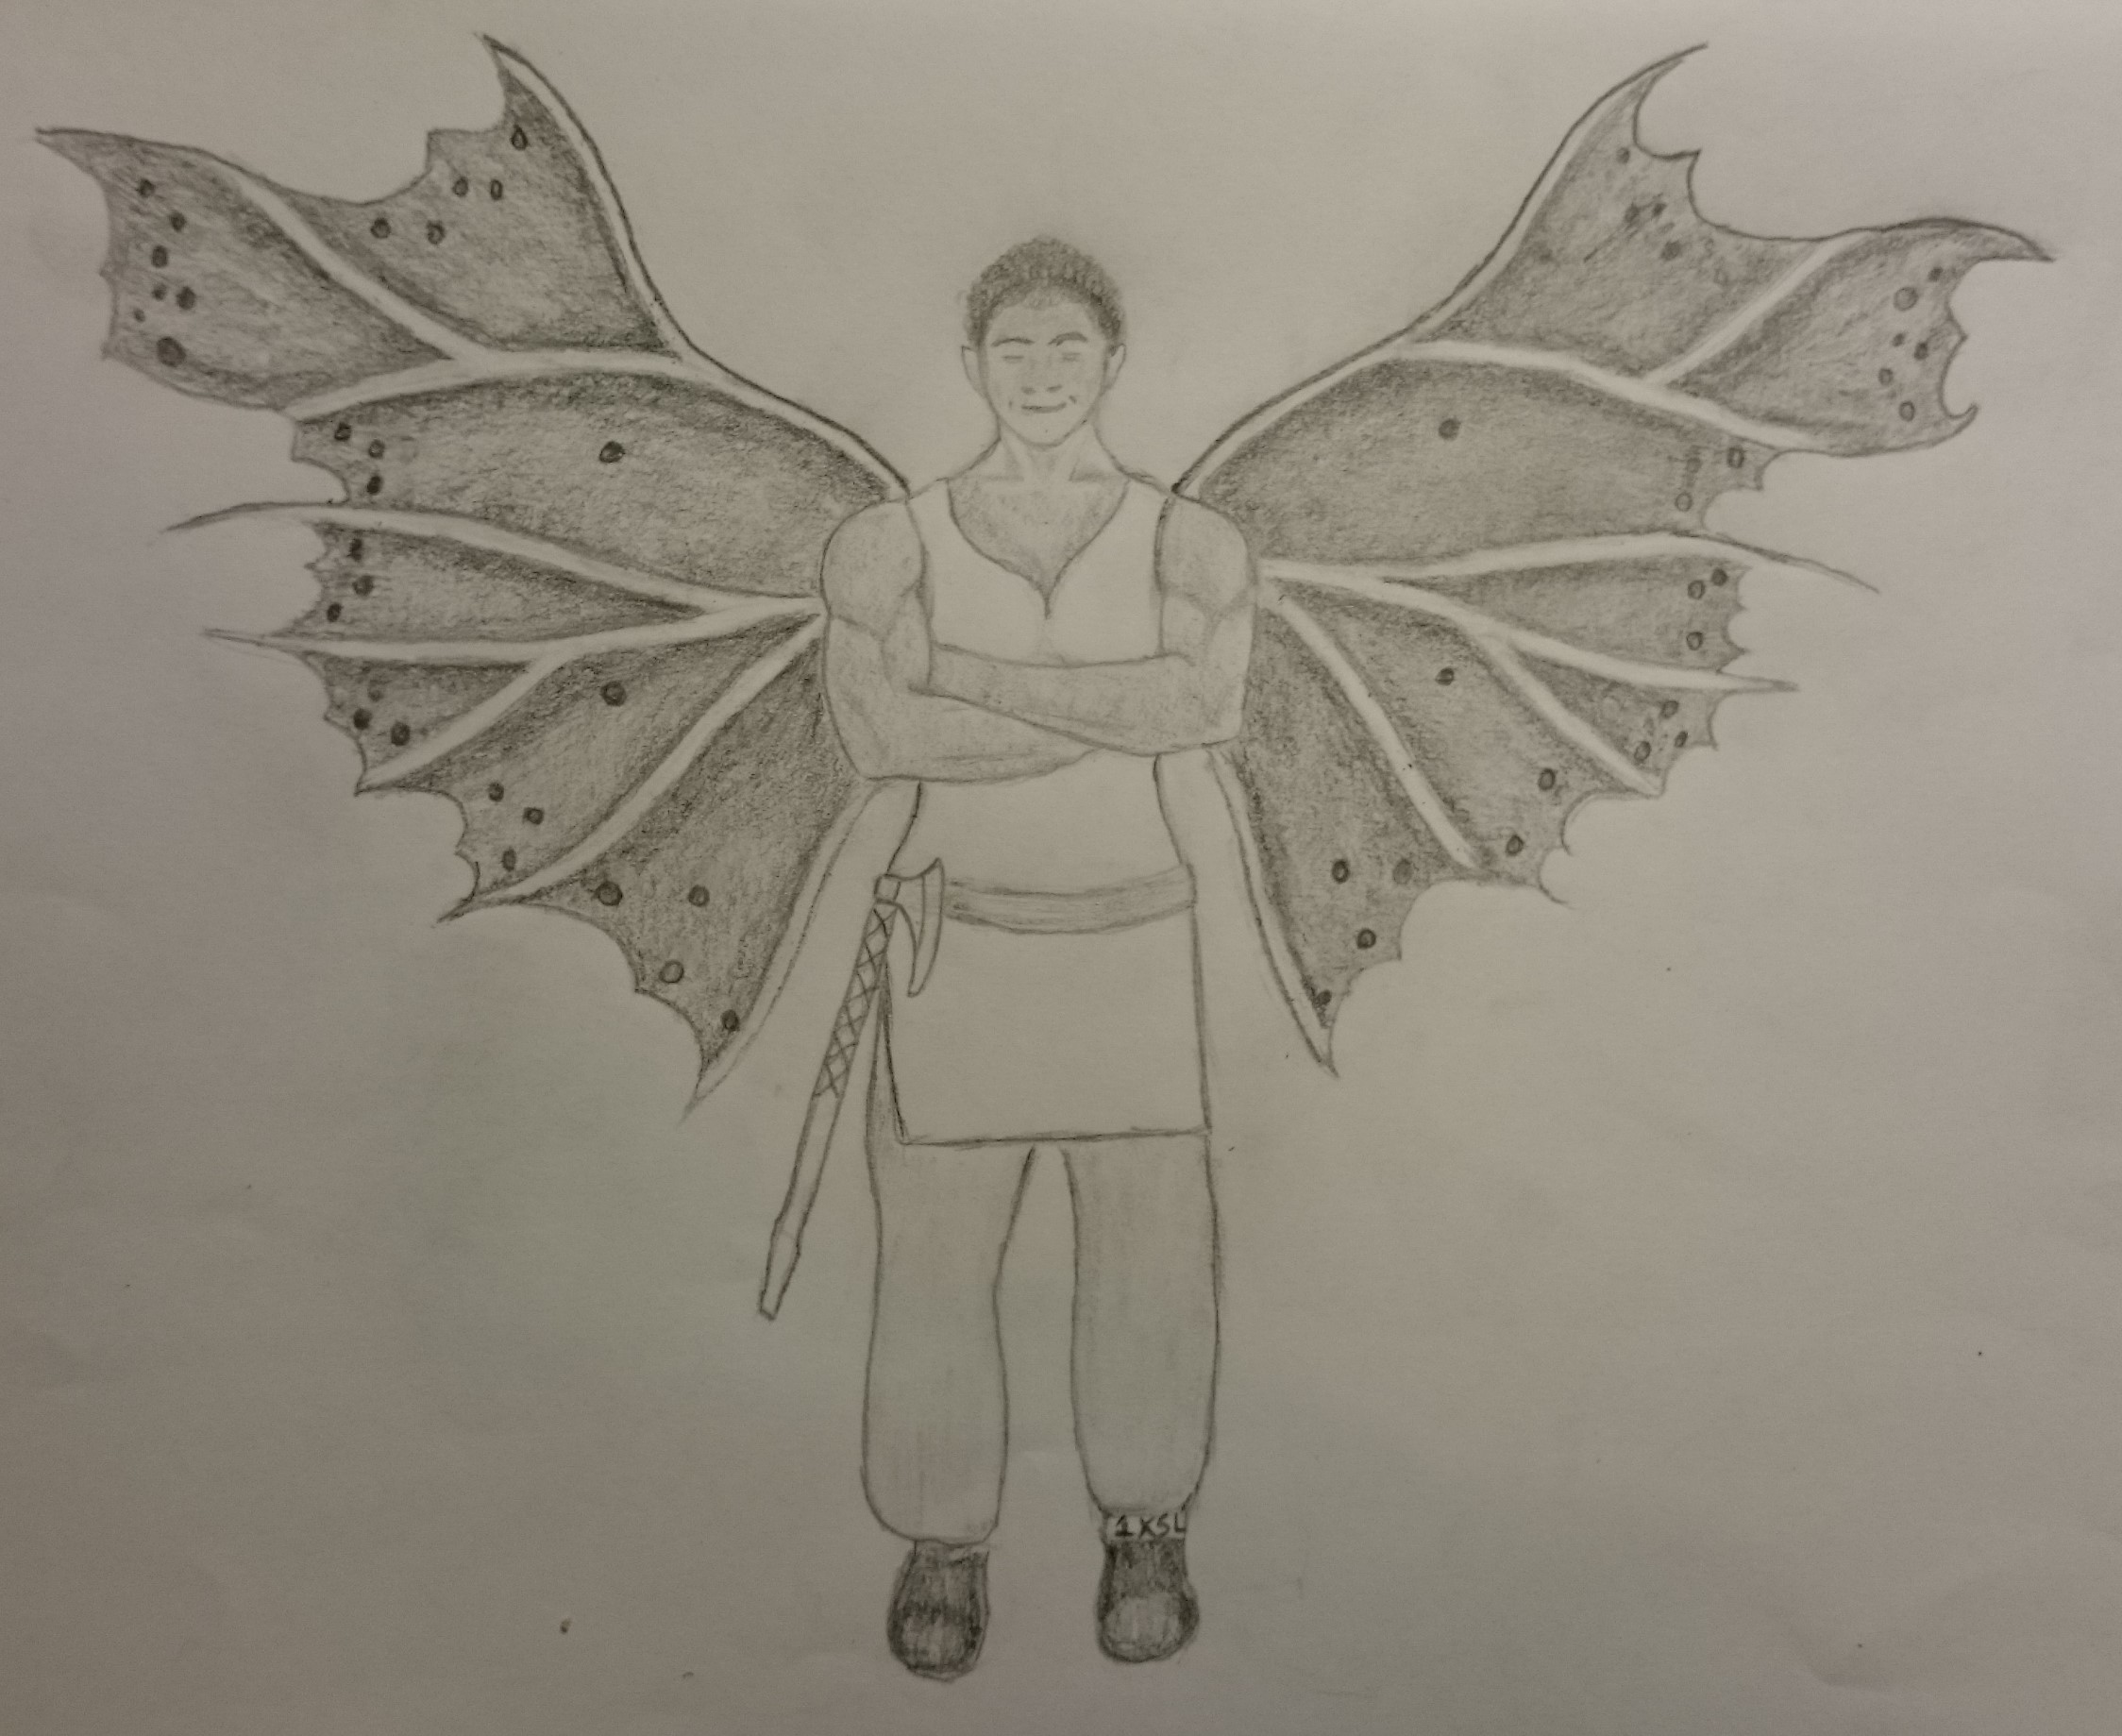 A grey and white rendering of Sadie by the incredibly talented LM. Sadie is standing with a soft smile on her face, muscular arms crossed over her chest as she expands her elaborate, midnight-speckled, beautifully-veined wings. Her simple white tunic is crossed by a belt at her hips, from which her axe hangs loosely. LM credits frozenstocks over on deviantart with the inspiration for the wing-pattern, here --http://frozenstocks.deviantart.com/art/UNRESTRICTED-Fairy-Wings-2-463861066